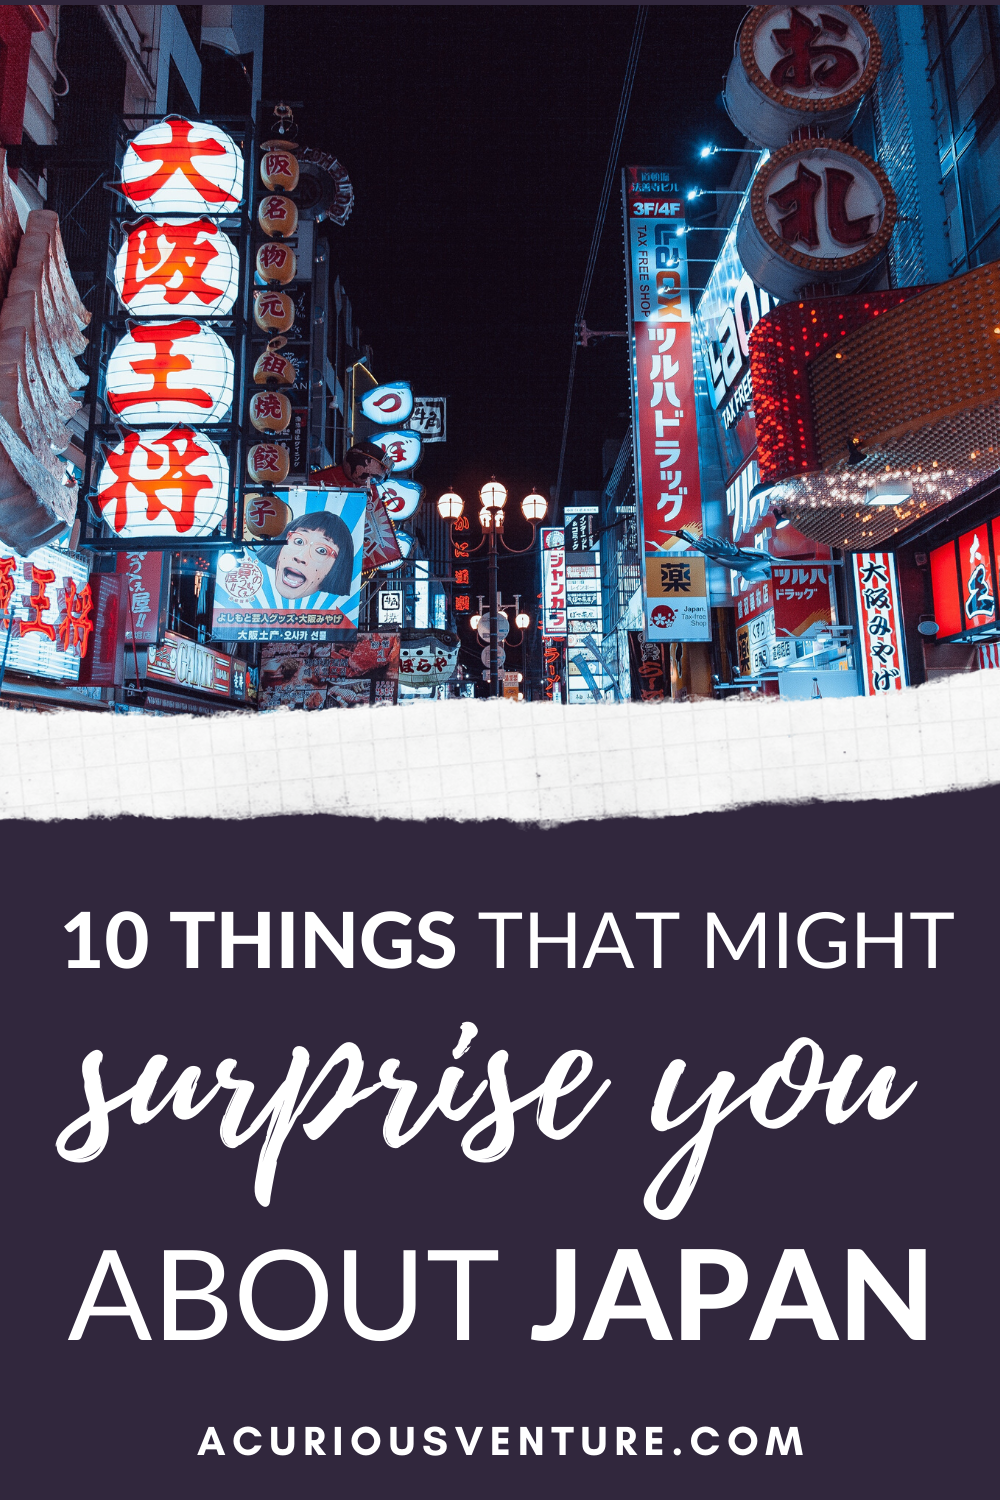 10 Things That Might Surprise You About Japan